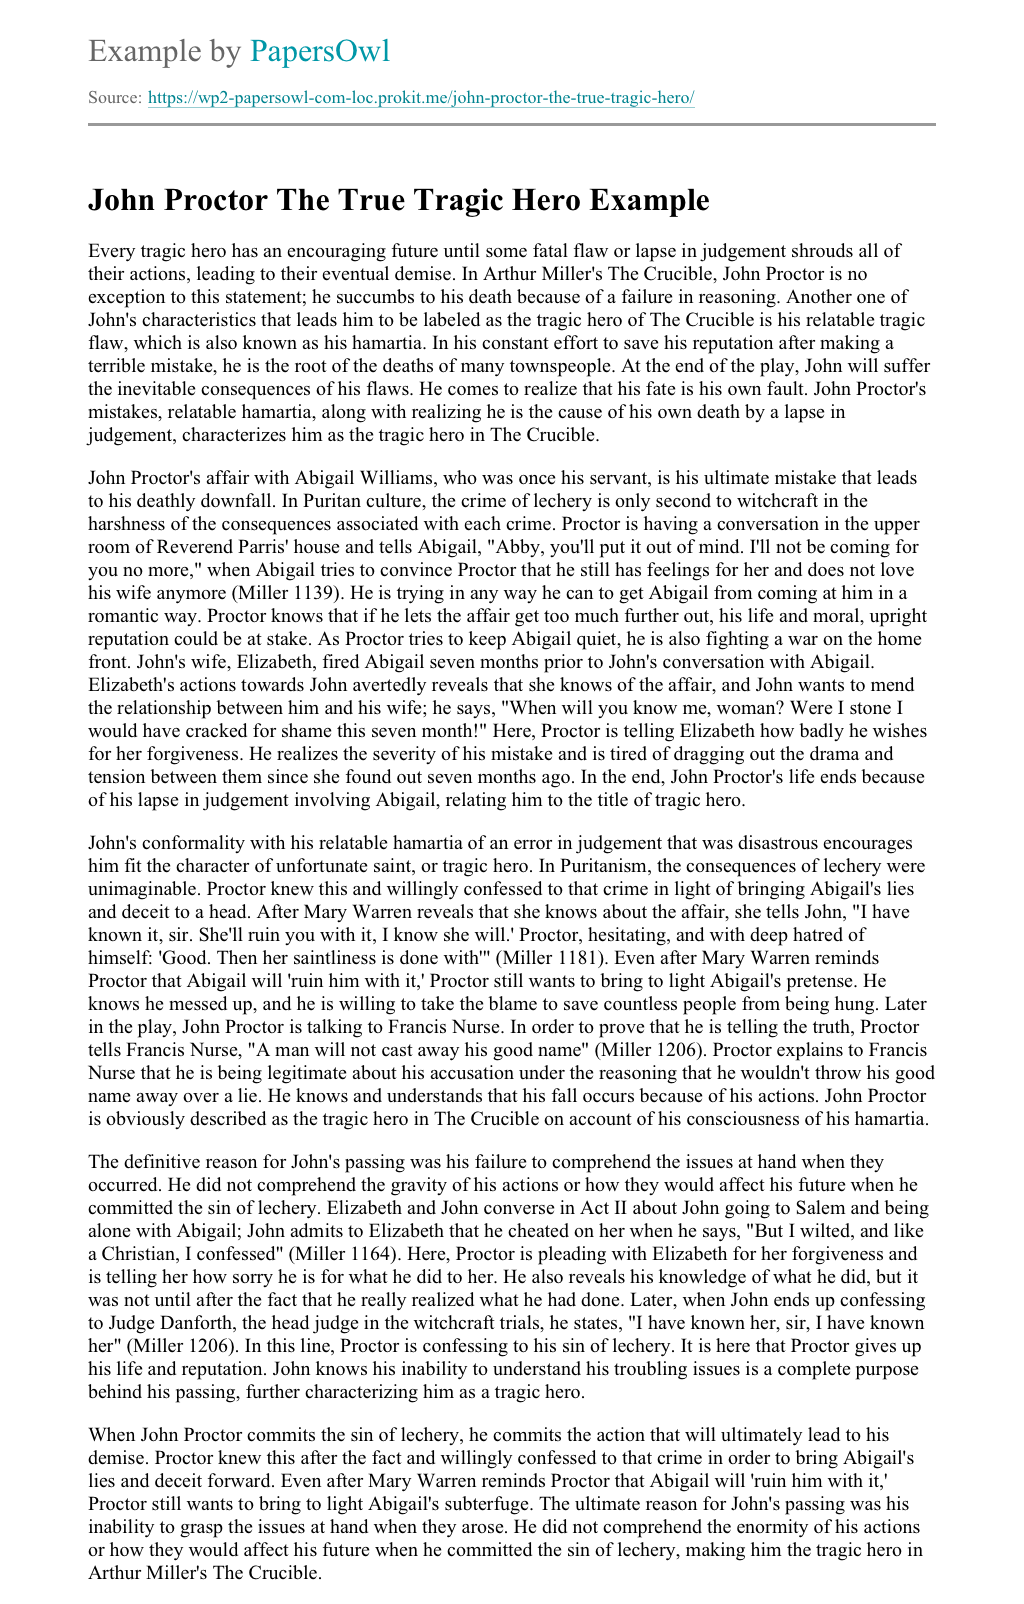 How to write an essay introduction example